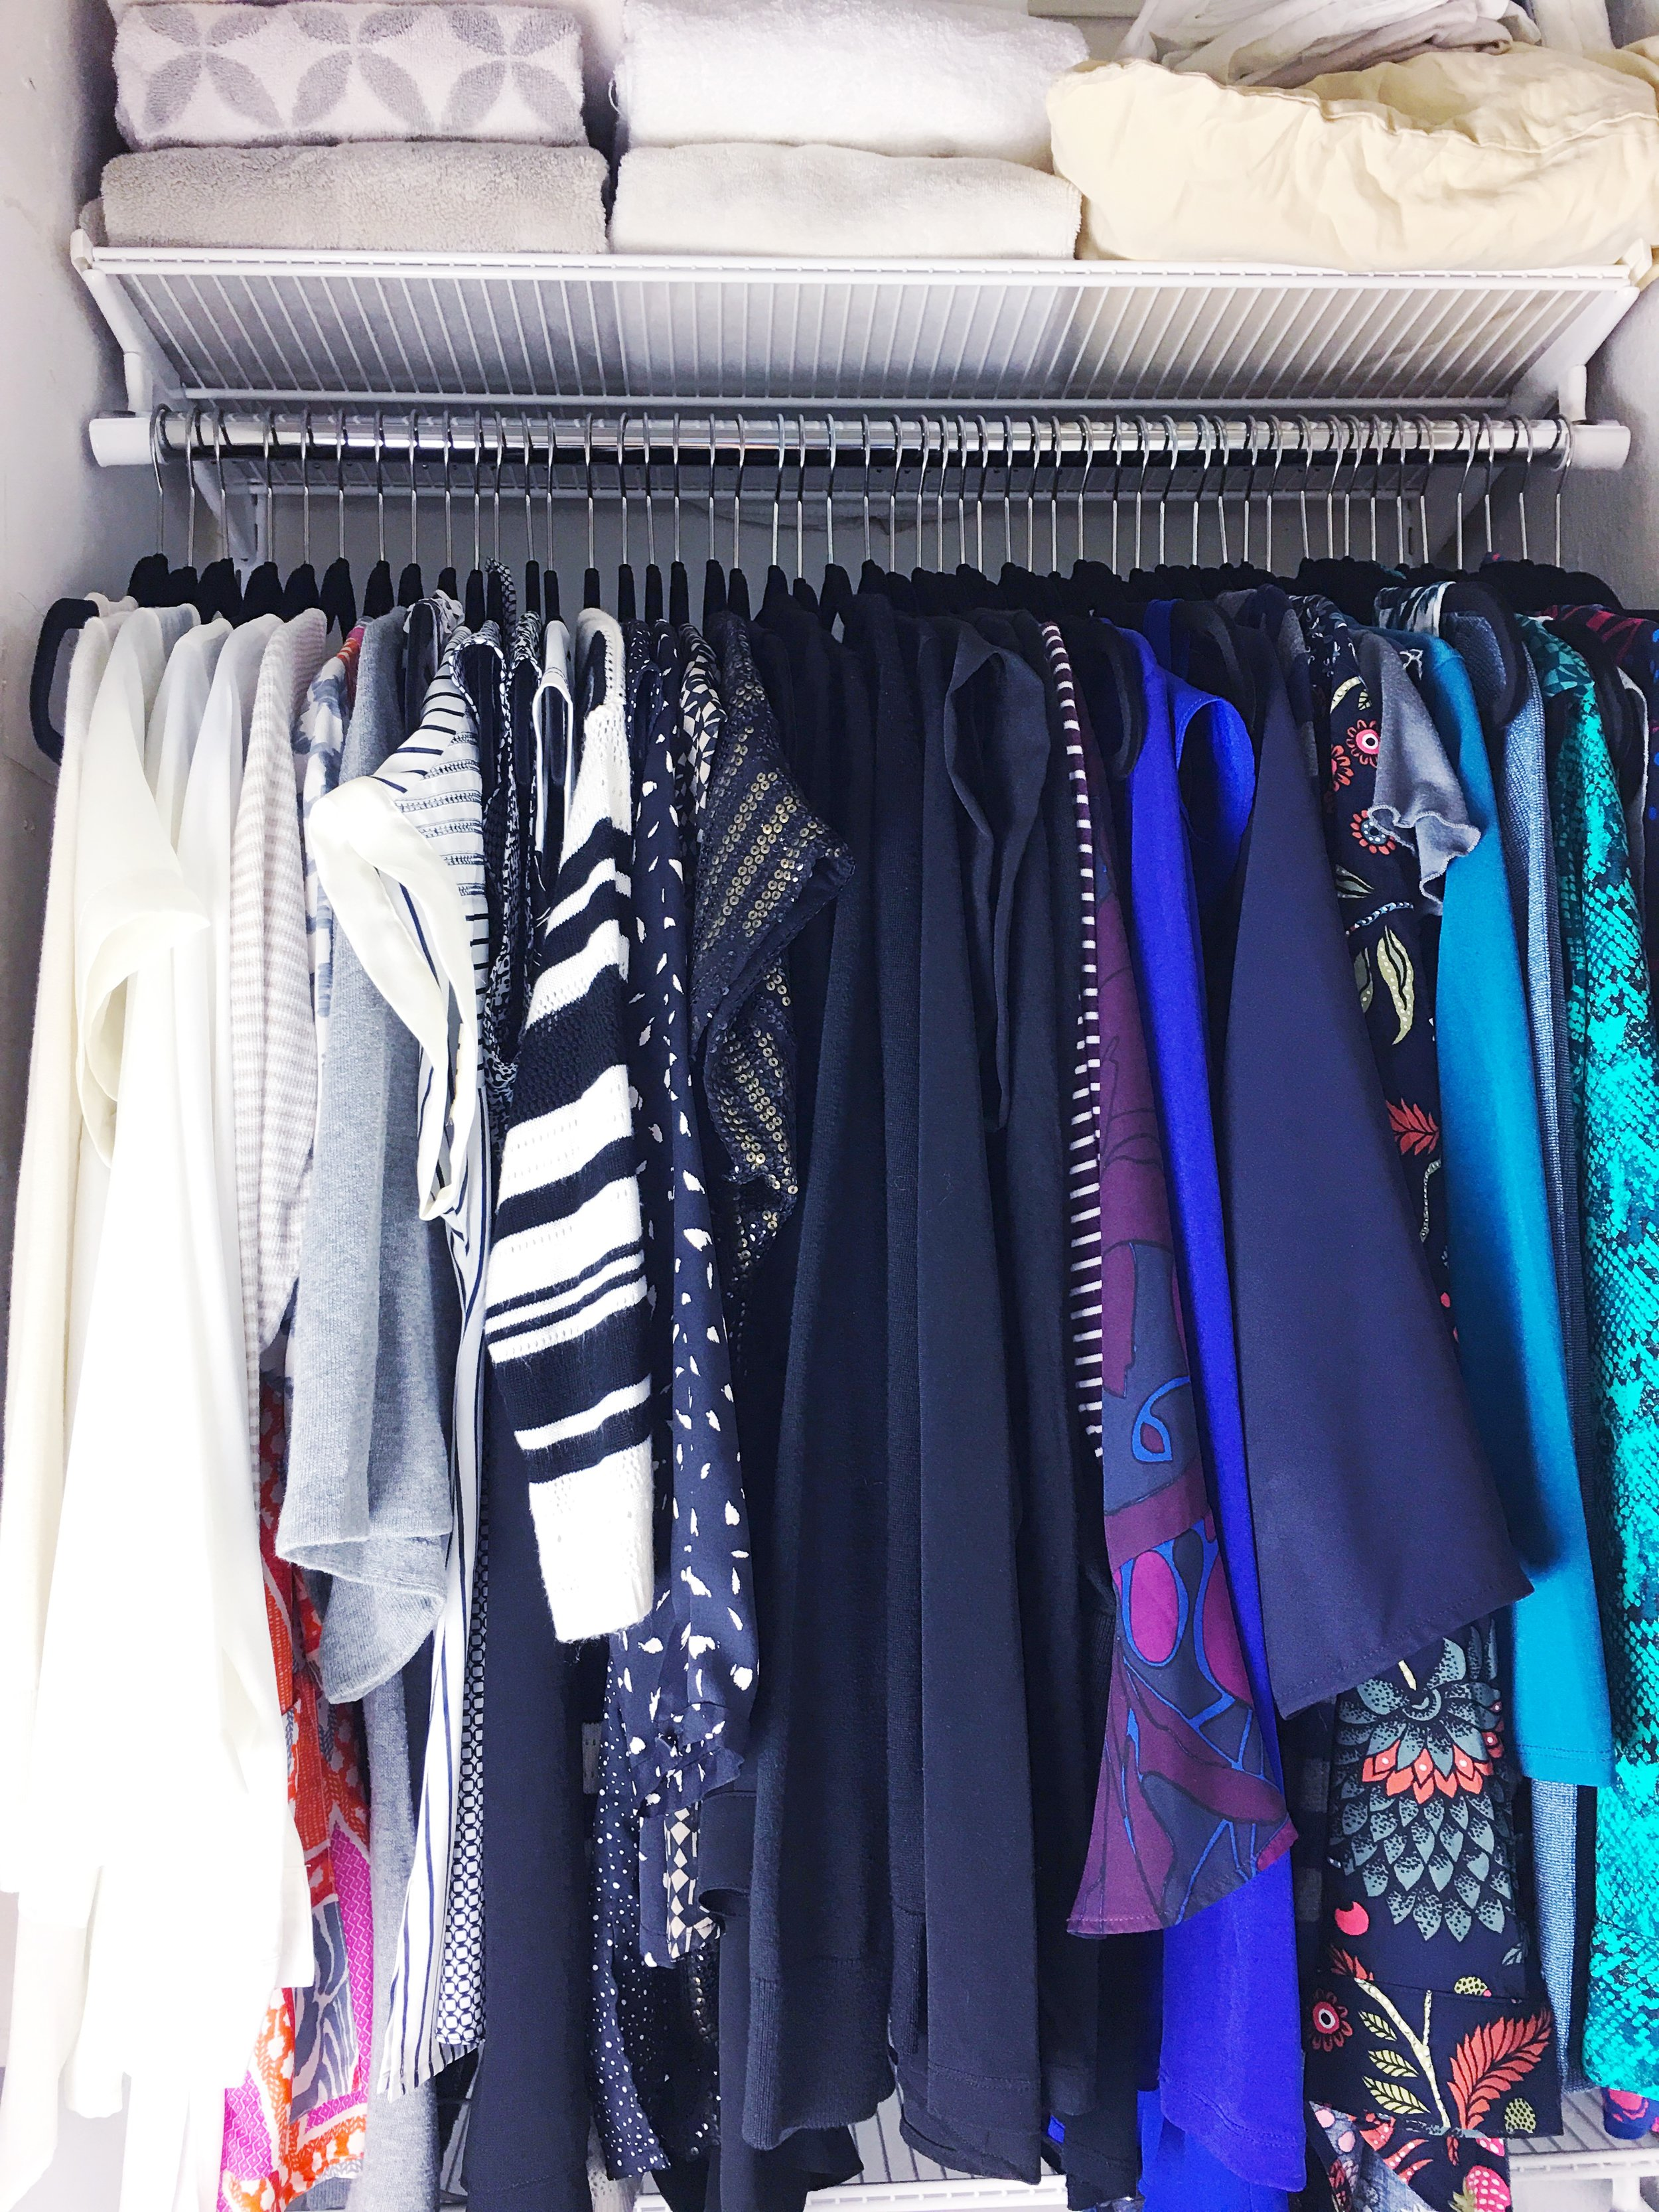 after 'hers' master closet organization